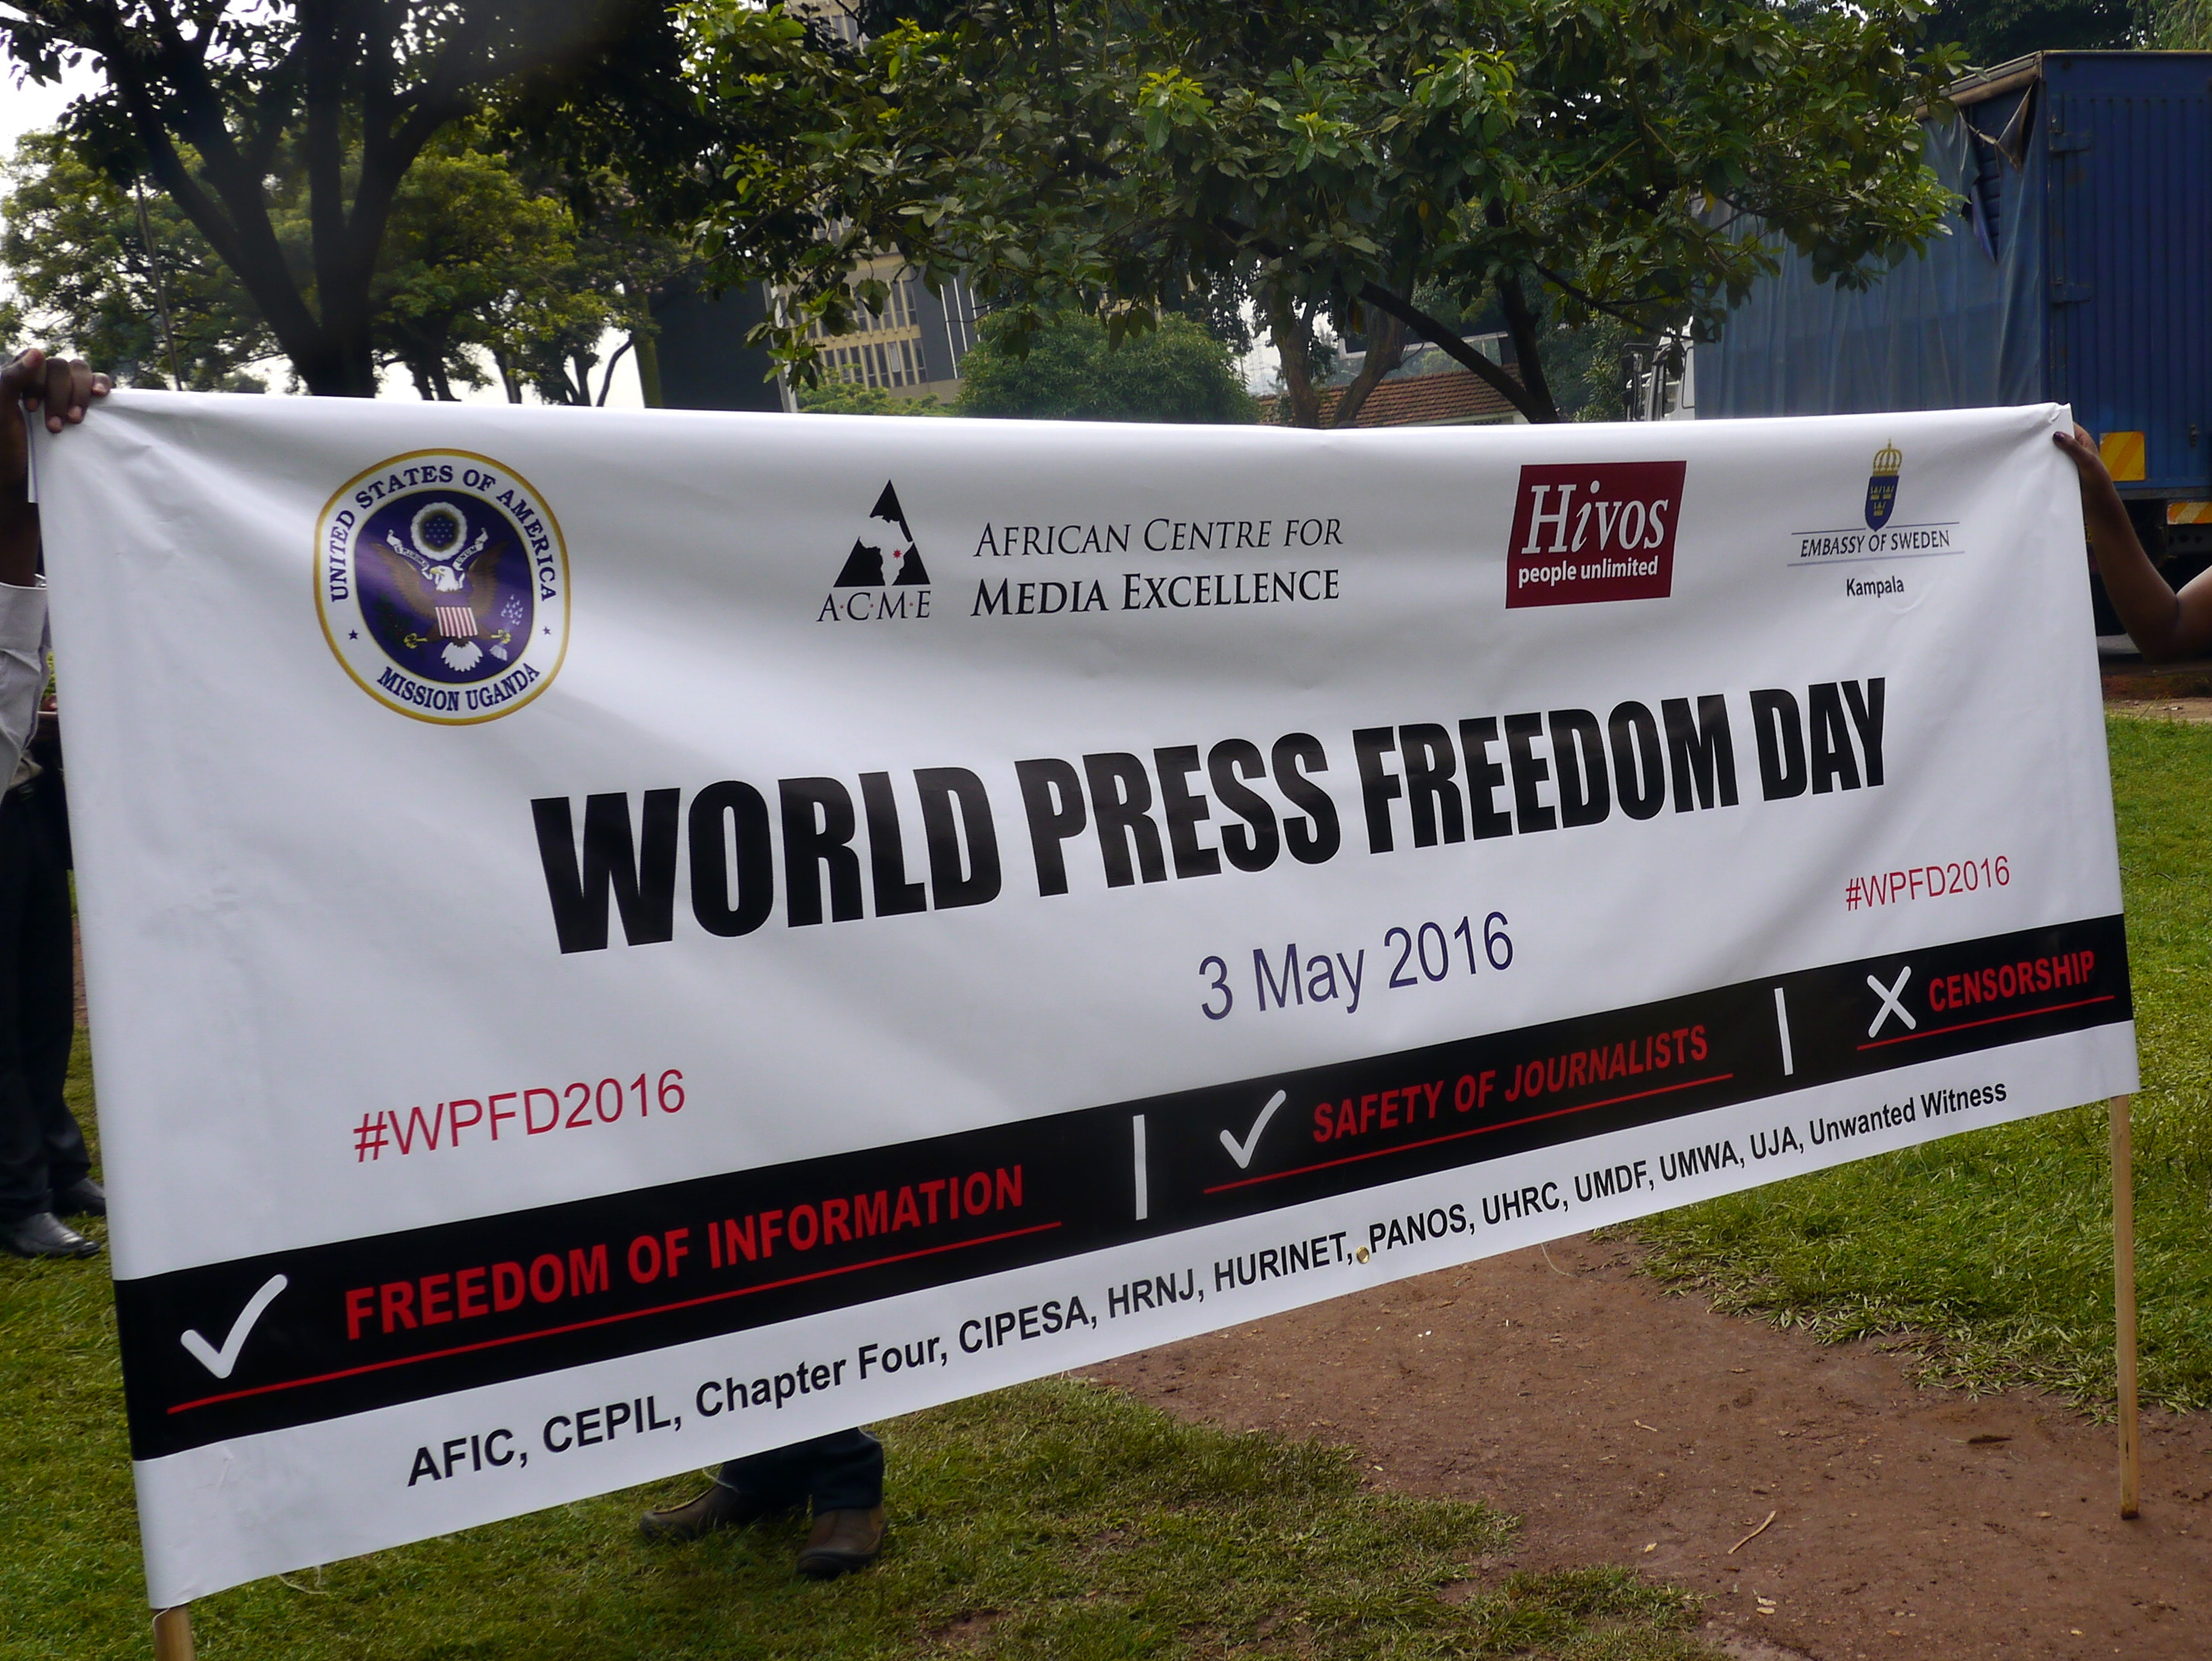 Freedom of expression advocacy